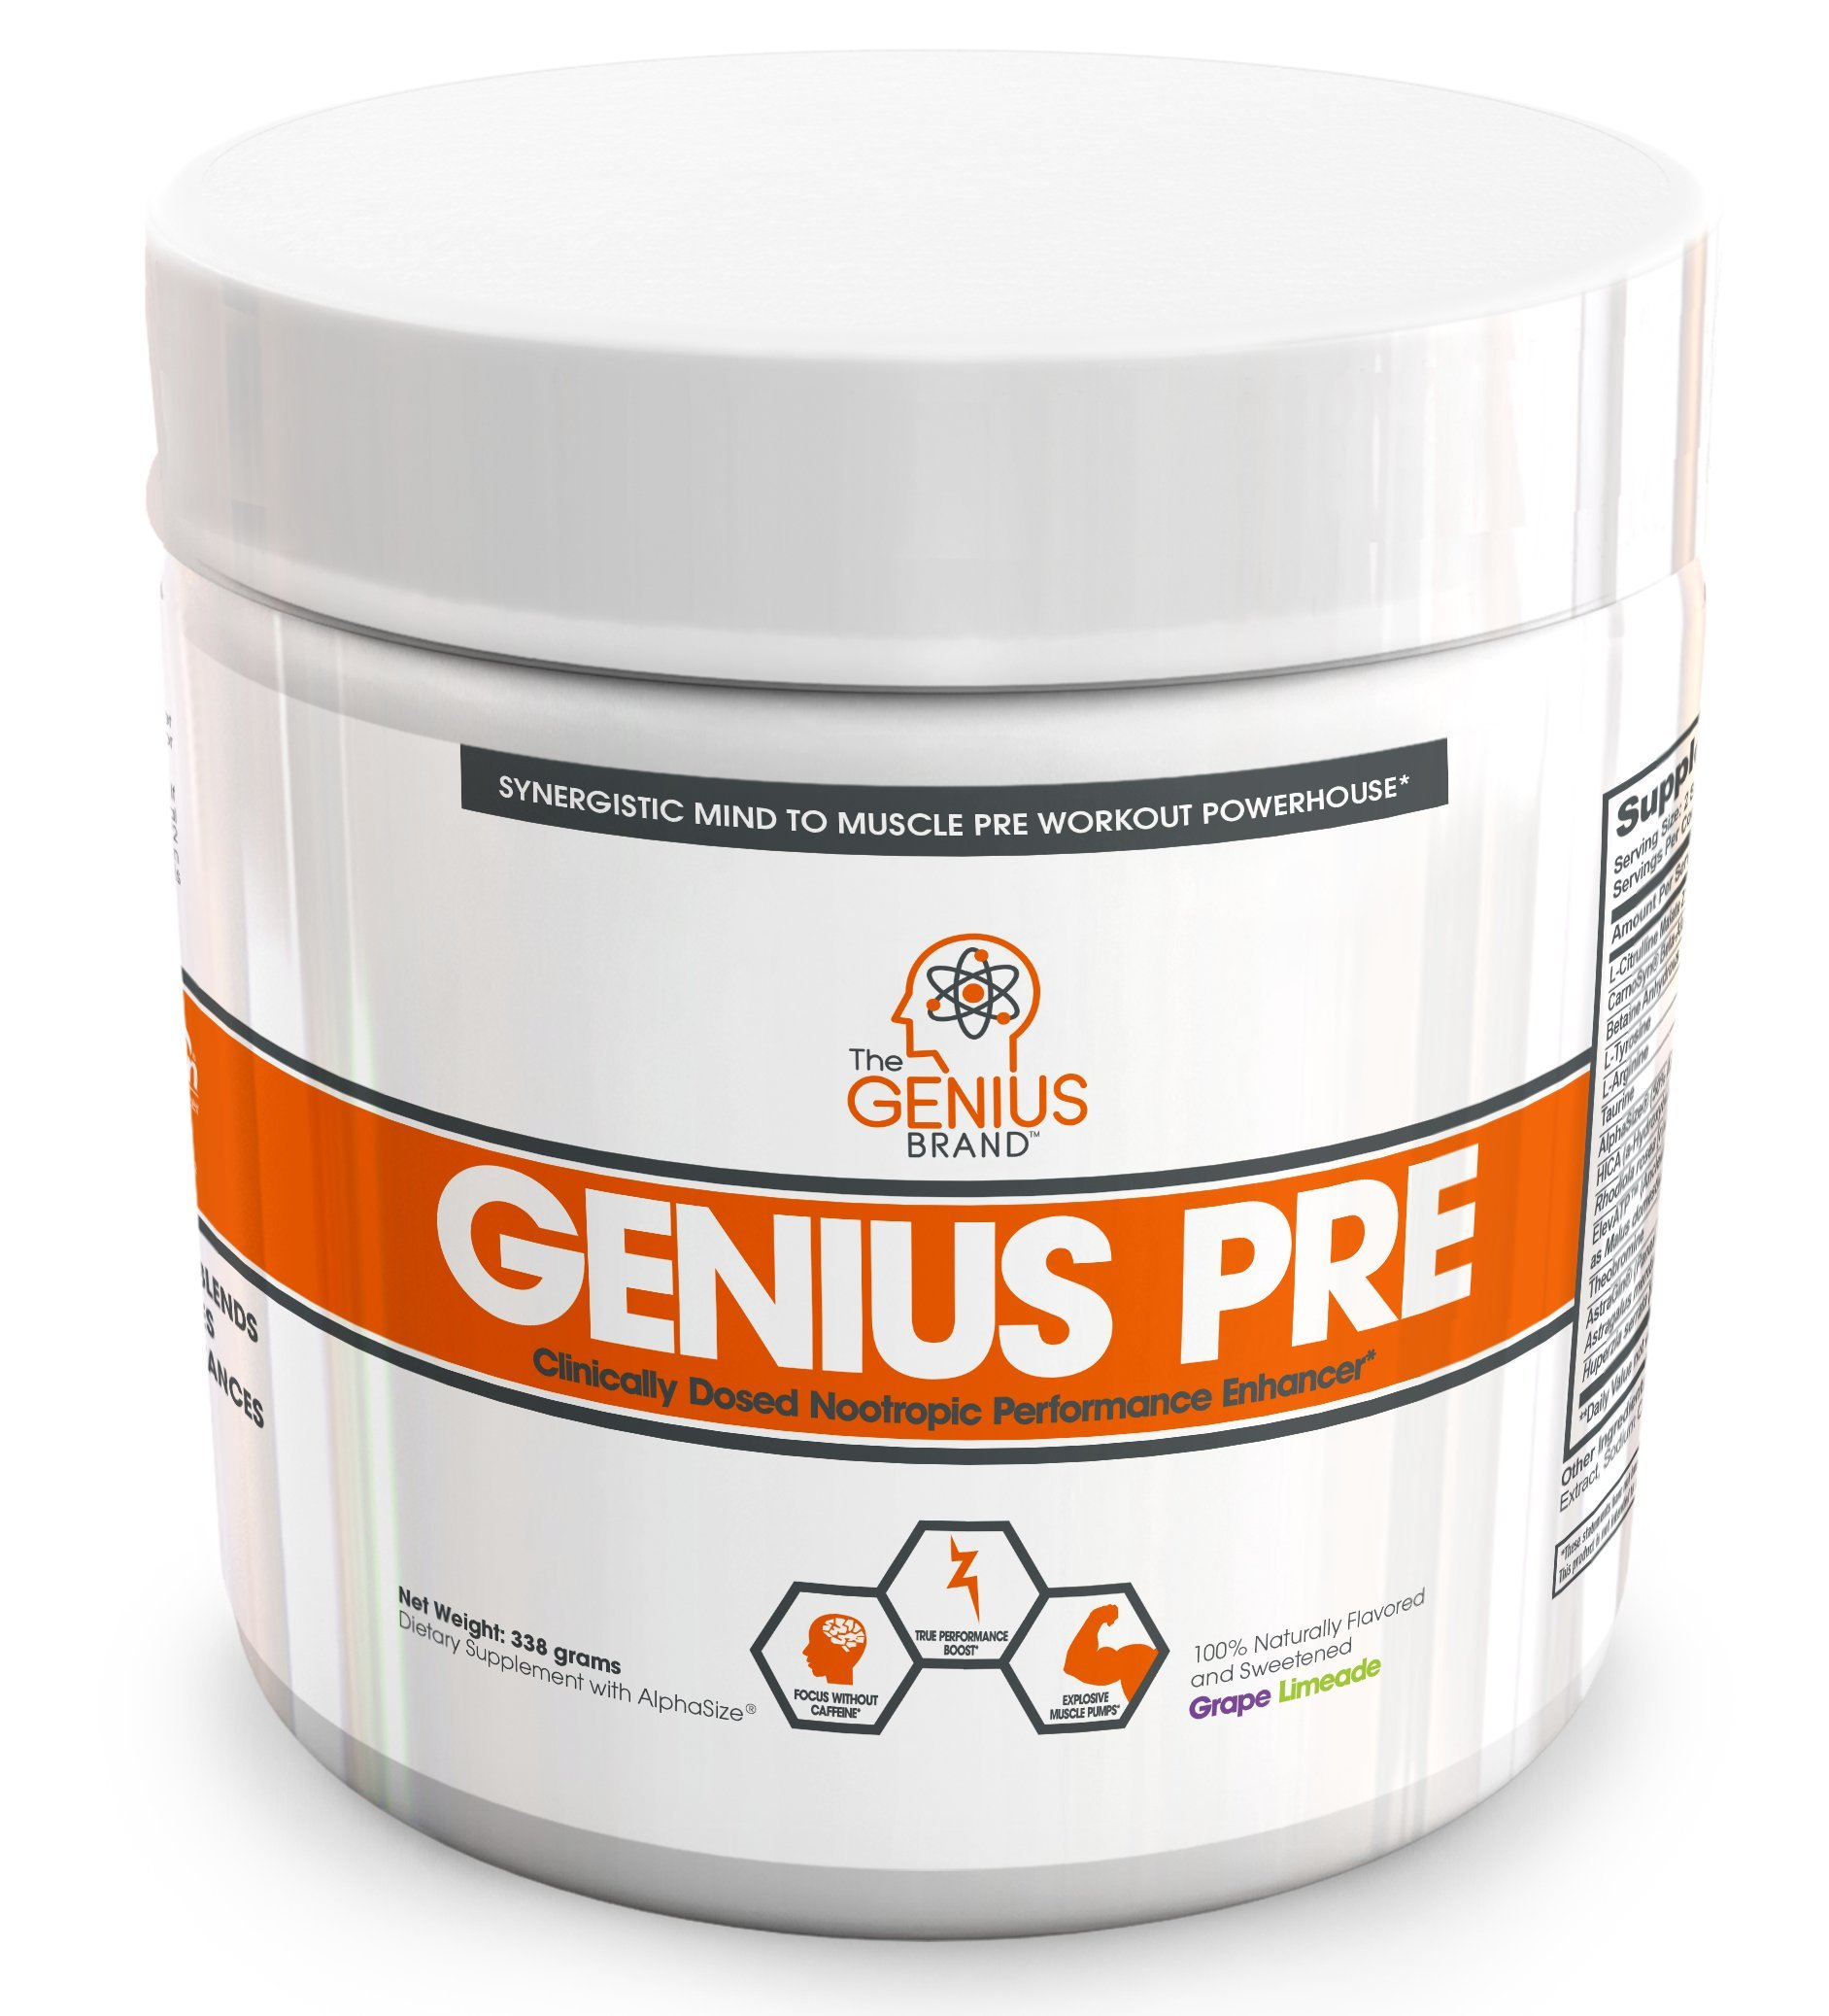 Genius Pre Workout – All Natural Nootropic Preworkout Powder & Caffeine-Free Nitric Oxide Booster with Beta Alanine and Alpha GPC - Focus, Energy and Muscle Building Supplement, Grape Limeade, 354G